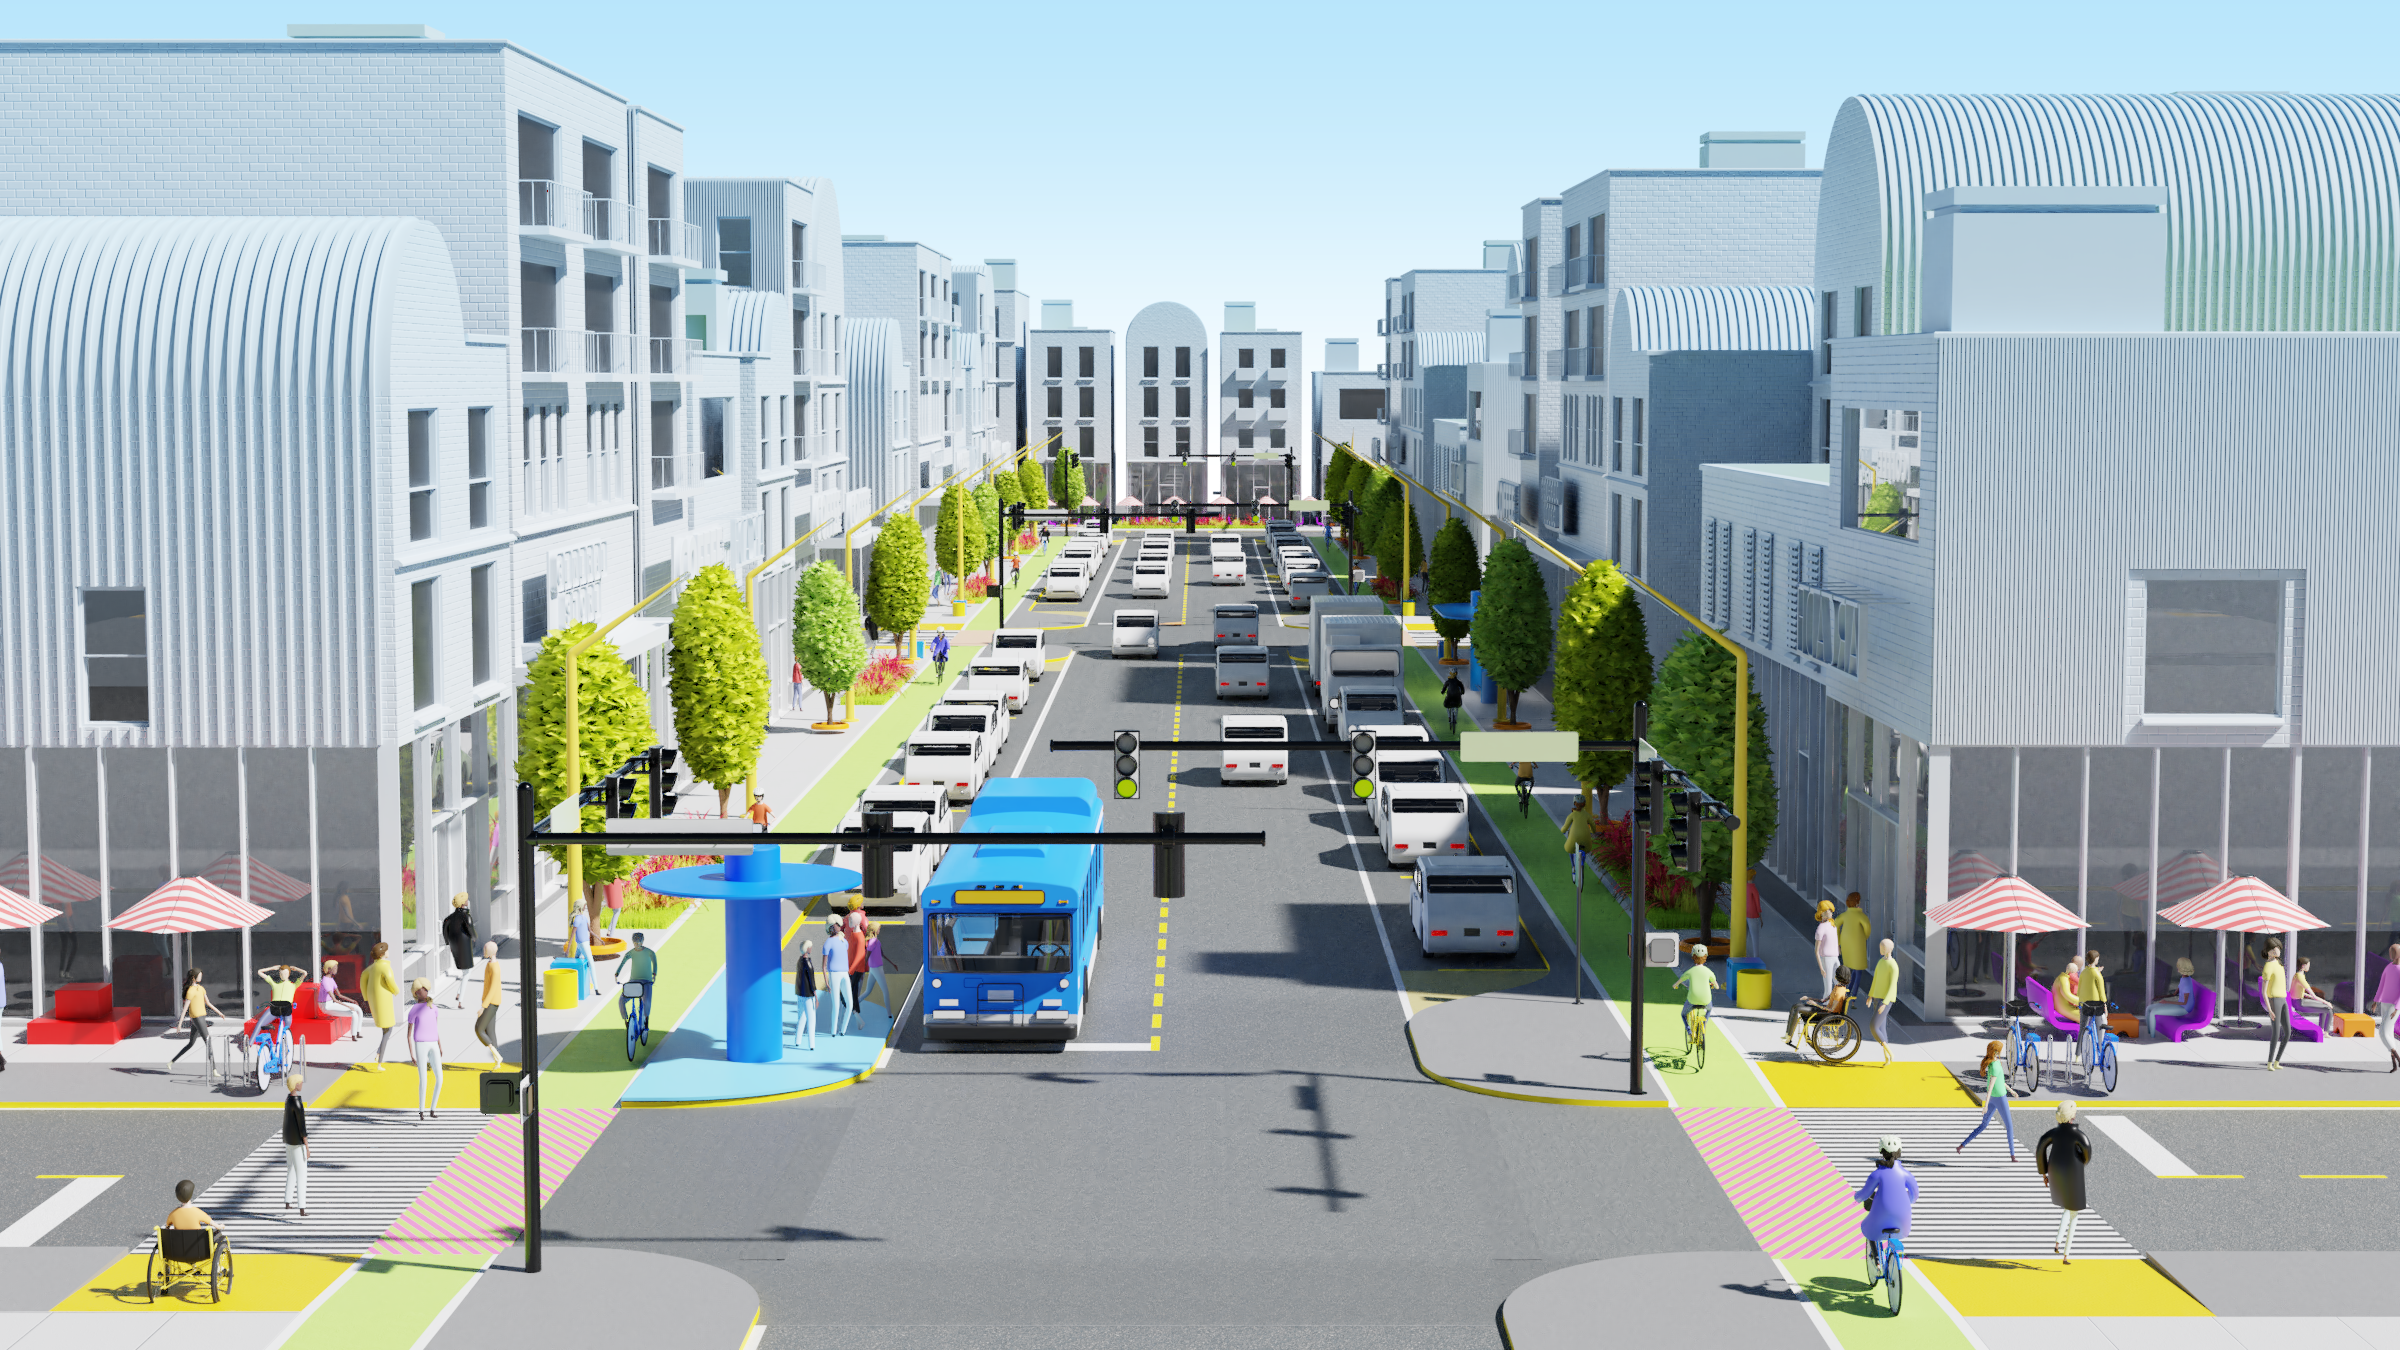 Adaptations to increase walkability with hot spots